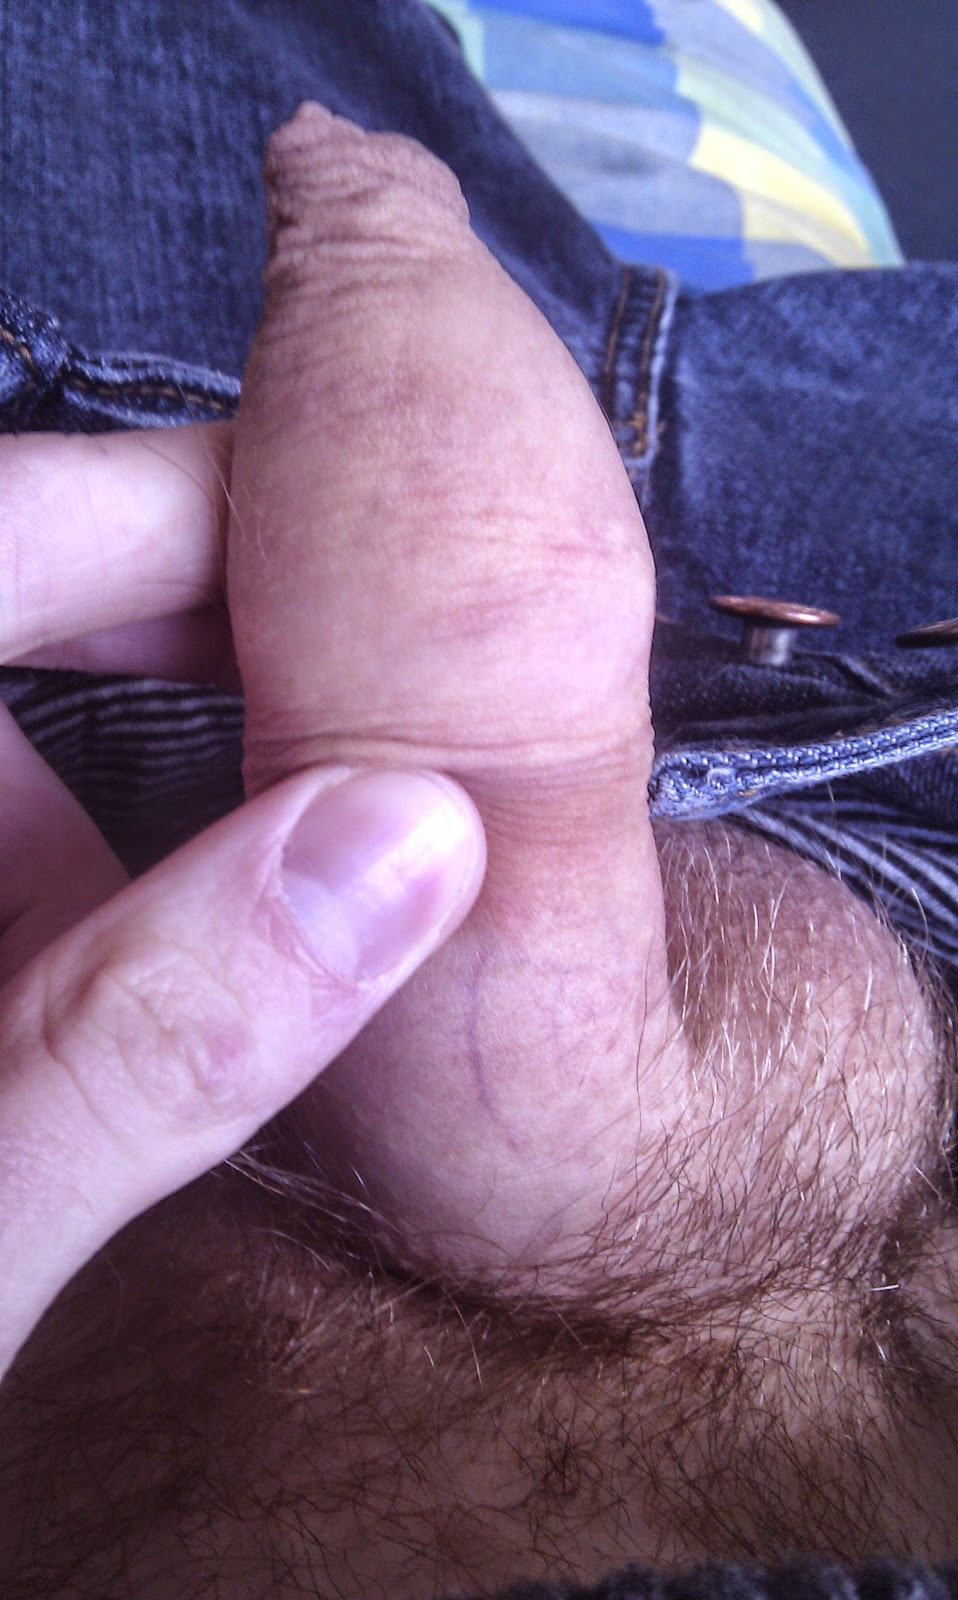 Foreskin so tight masturbation is impossible something